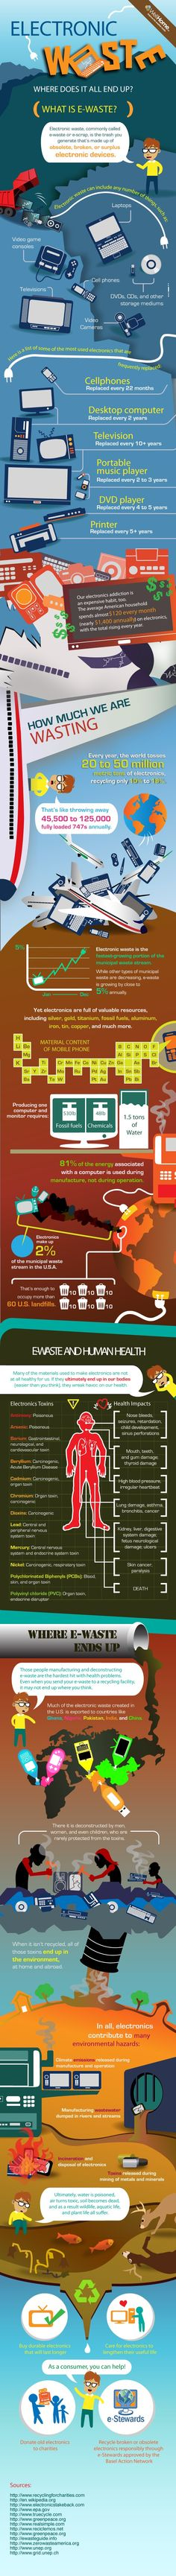 Electronic Waste Where Does it All End Up Infographic  #recycling #ewaste #technology #science